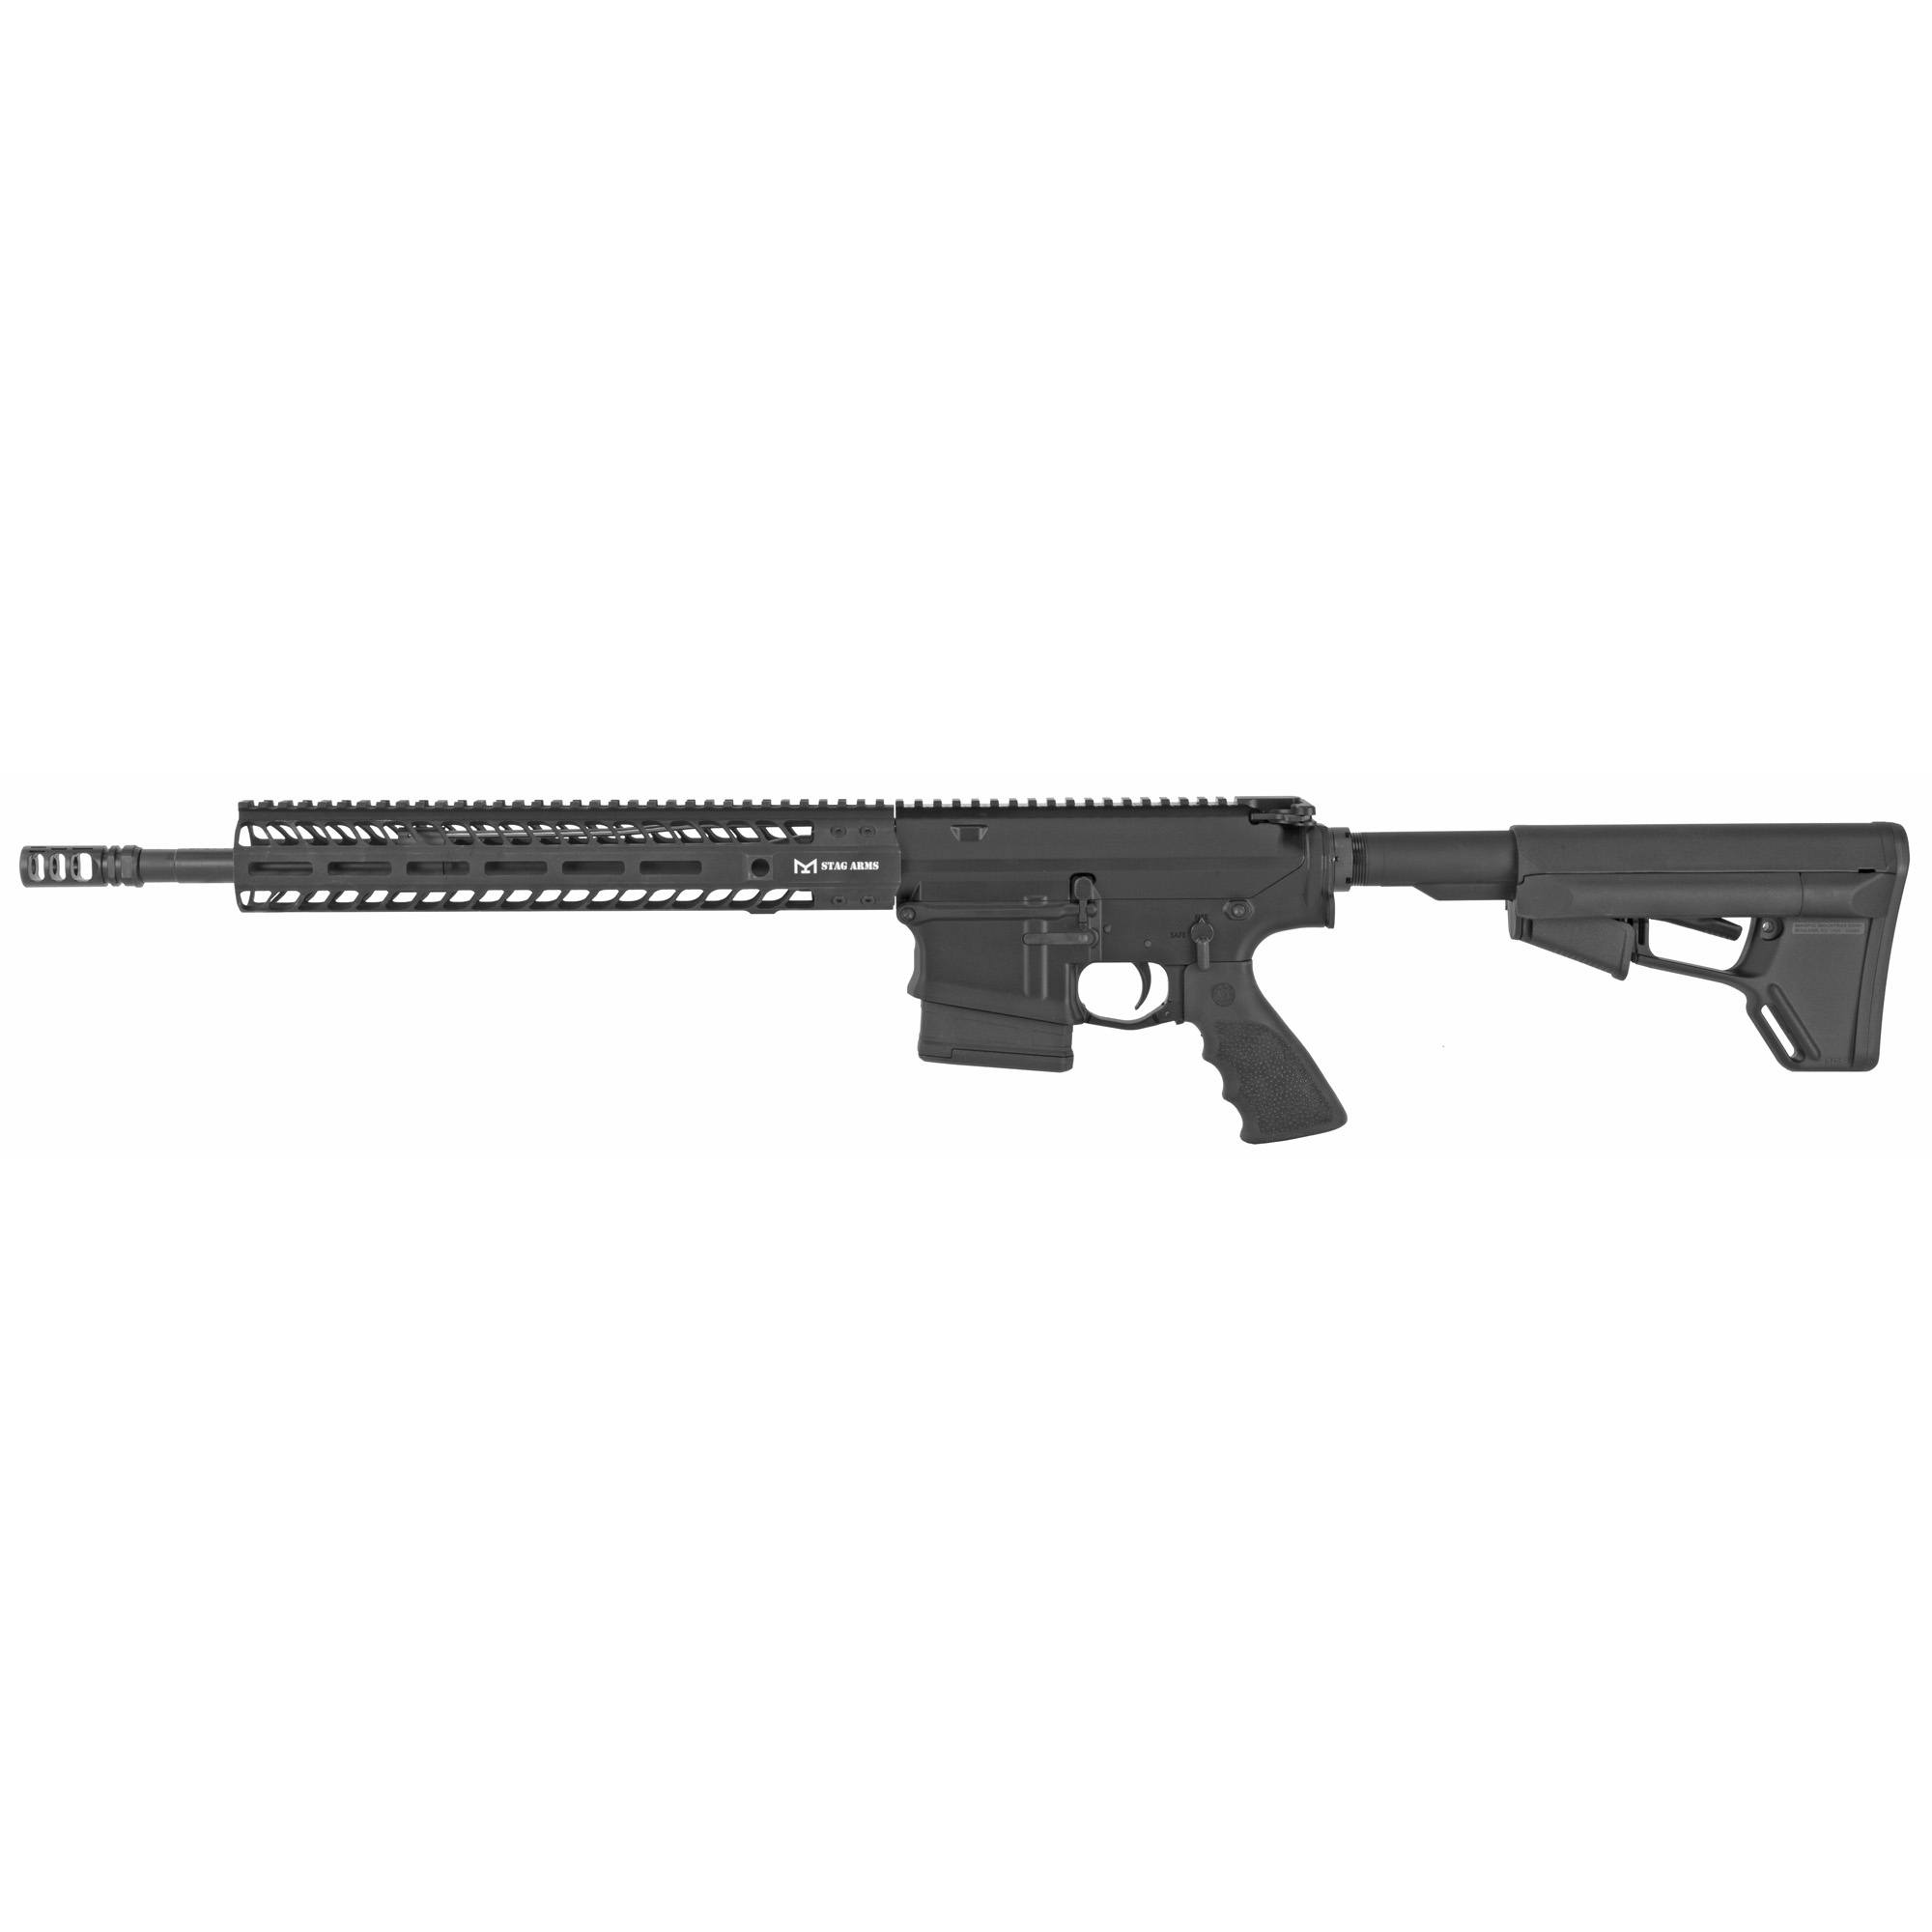 "The Stag 10S .308 M-LOK Rifle was specifically designed for those moments where you need that extra power in close quarters"" now with a light-weight ergonomic 13.5"" Stag Handguard. The Stag .308 line features a Stag slant cut design and includes uniquely designed parts for the lower to guarantee the best fit between the upper and lower. The remainder of the rifle utilizes the DPMS .308 platform for parts compatibility. The Stag 10S features a .308 chamber 16"" 1/10 barrel"" VG6 Gamma Compensator"" 13.5"" Stag M-LOK Handguard and a QPQ Nitride BCG. Every complete rifle from Stag Arms comes with a Transferable Lifetime Warranty"" an Infinite Shot Barrel Guarantee"" a magazine and a rifle case."